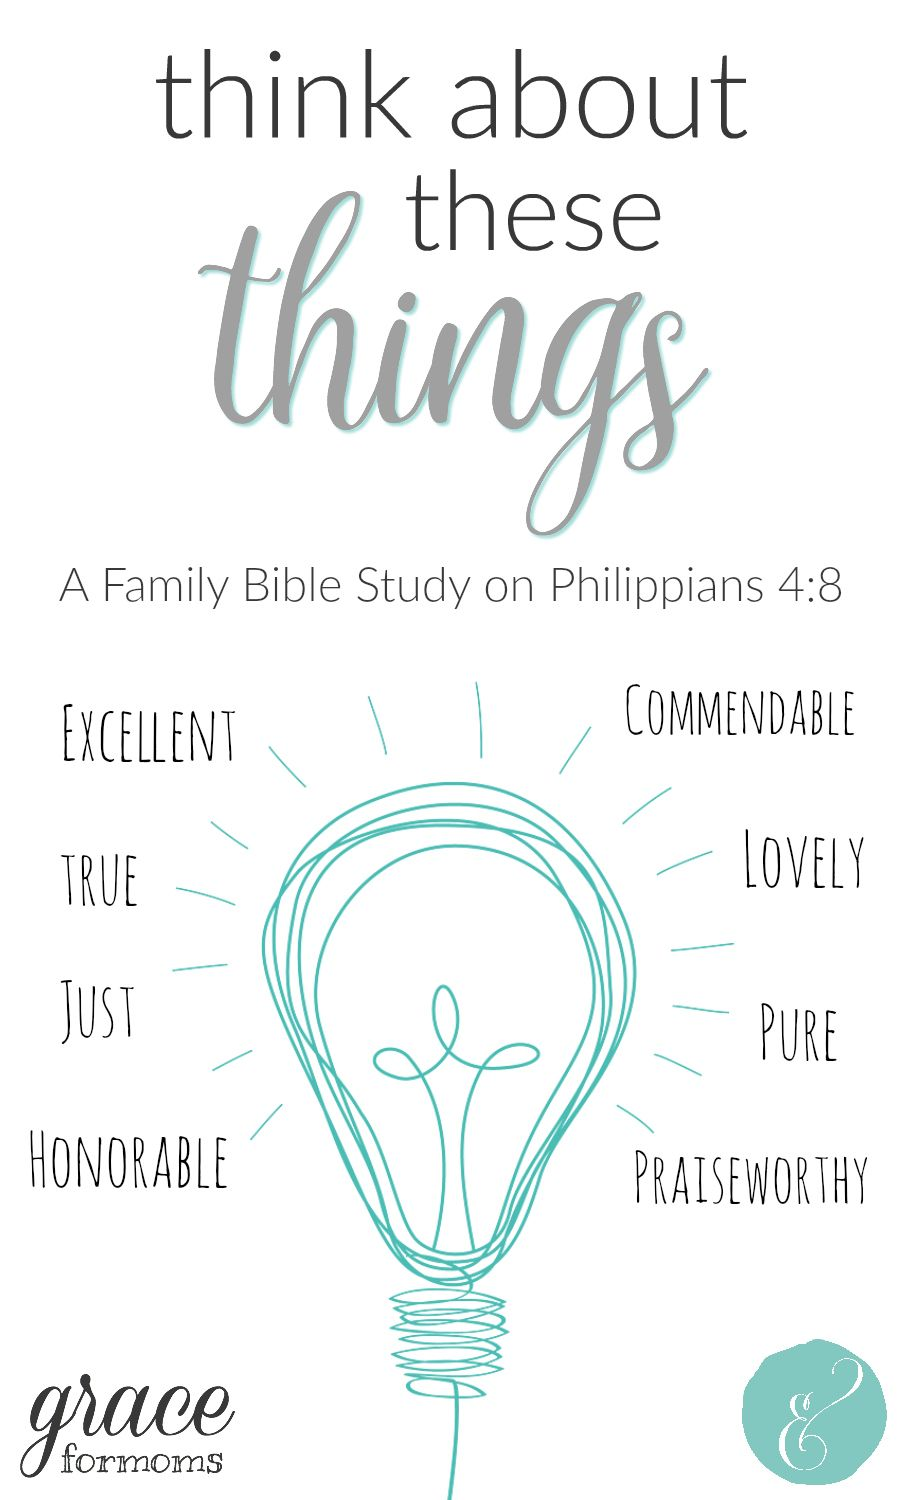 Family Bible Study on Philippians 4:8 including a word study